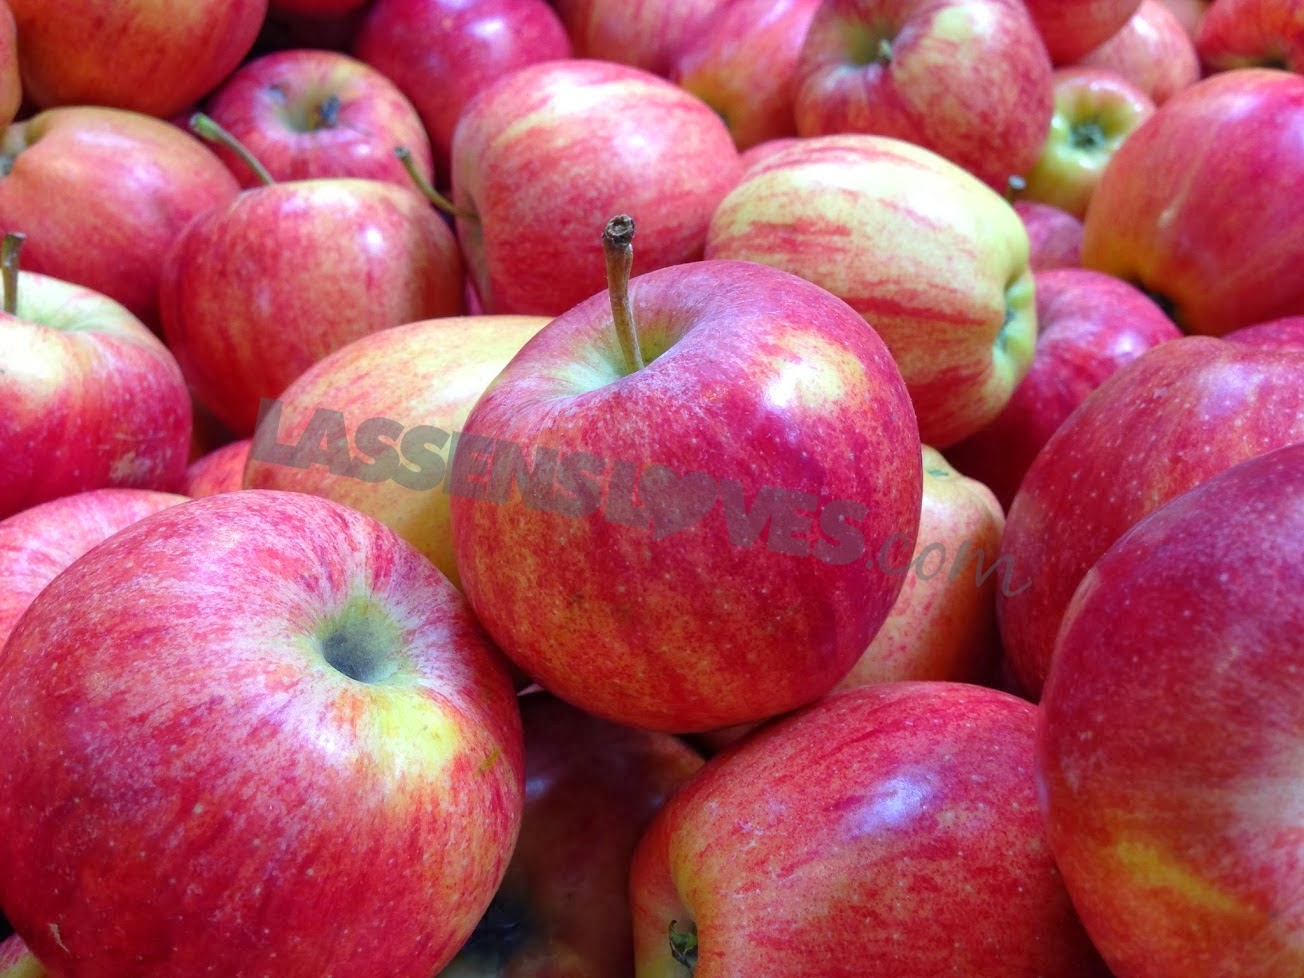 organic+apples, reject+GMO+apples, GMO+apples+approved